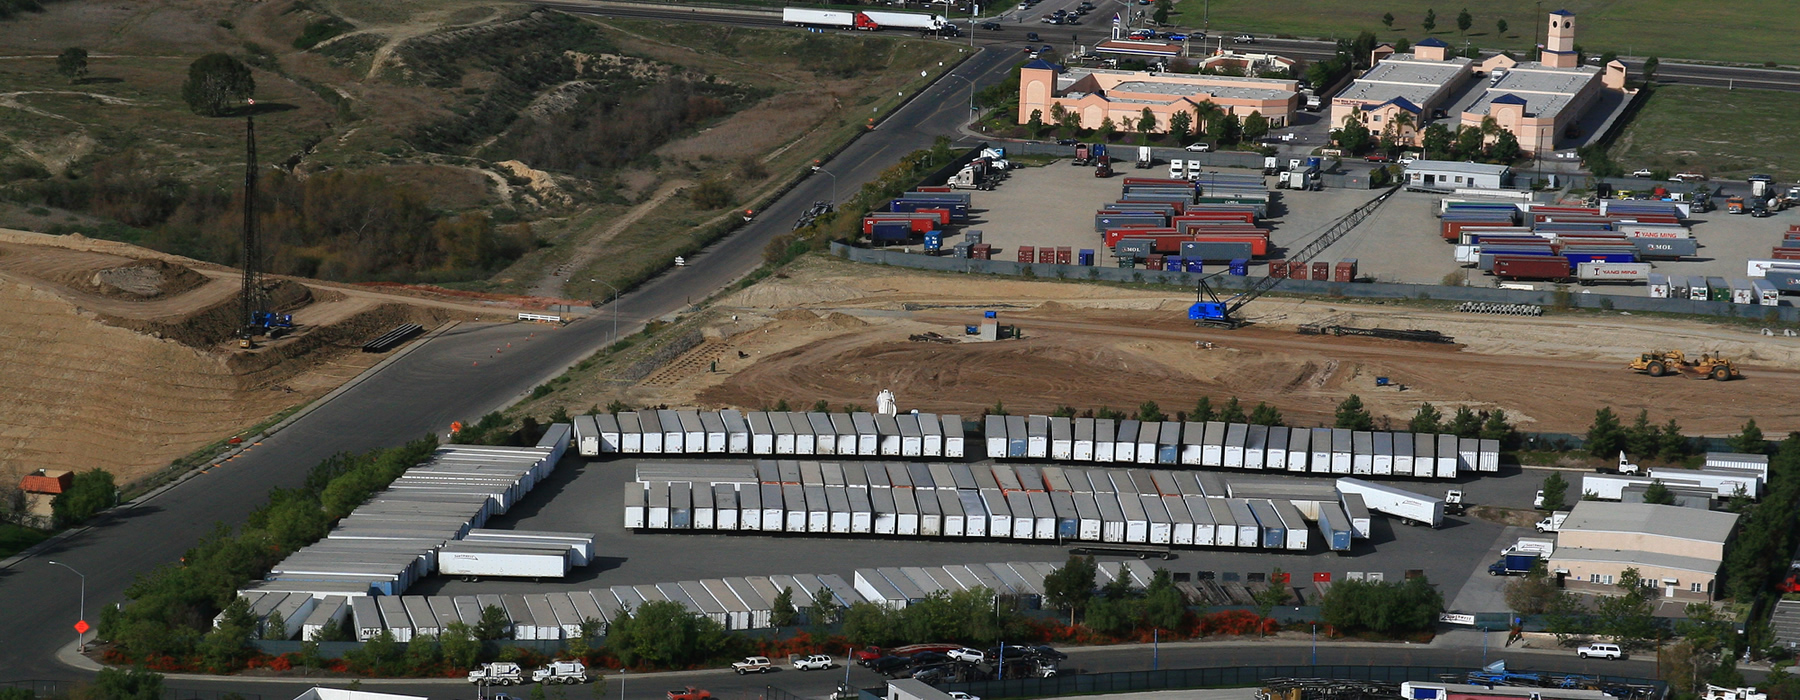 sothwest trailers largest selection in southern california